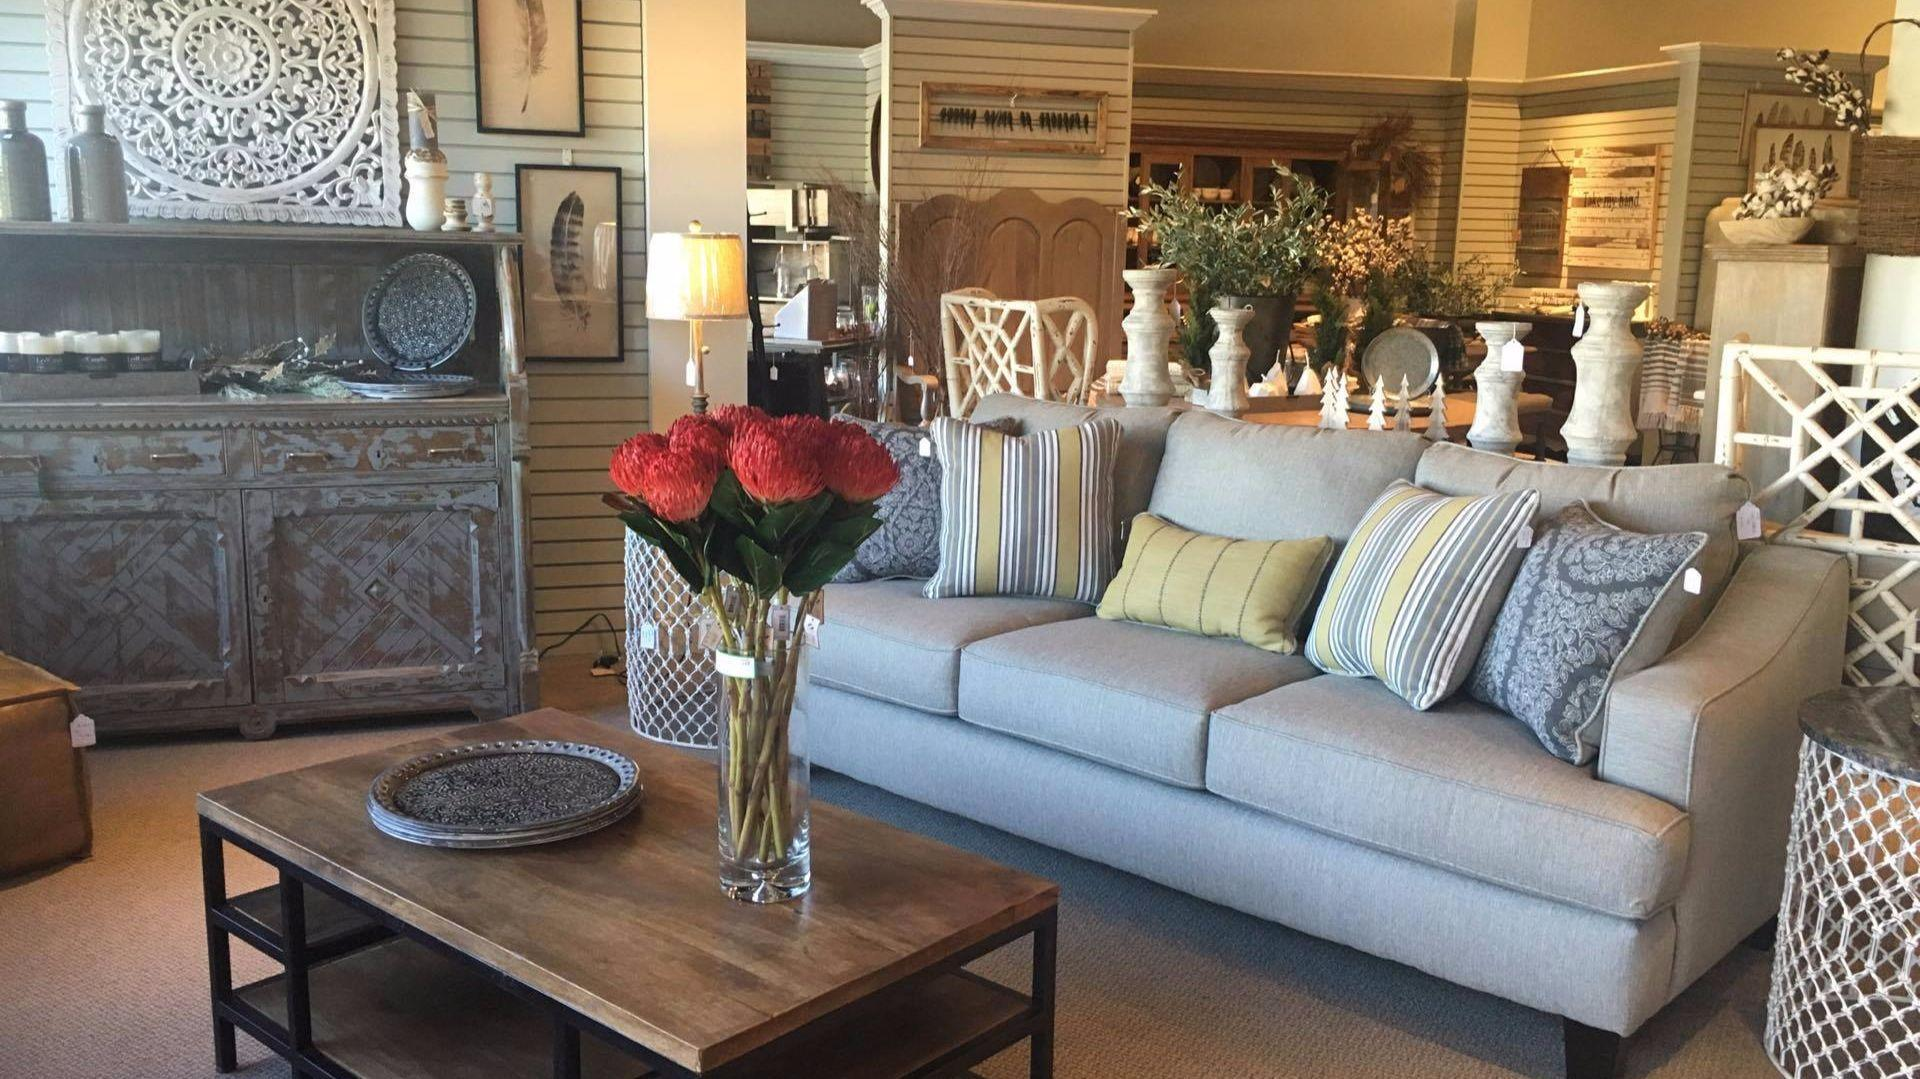 Home Furnishings Store Belle Patri Opens Second Location